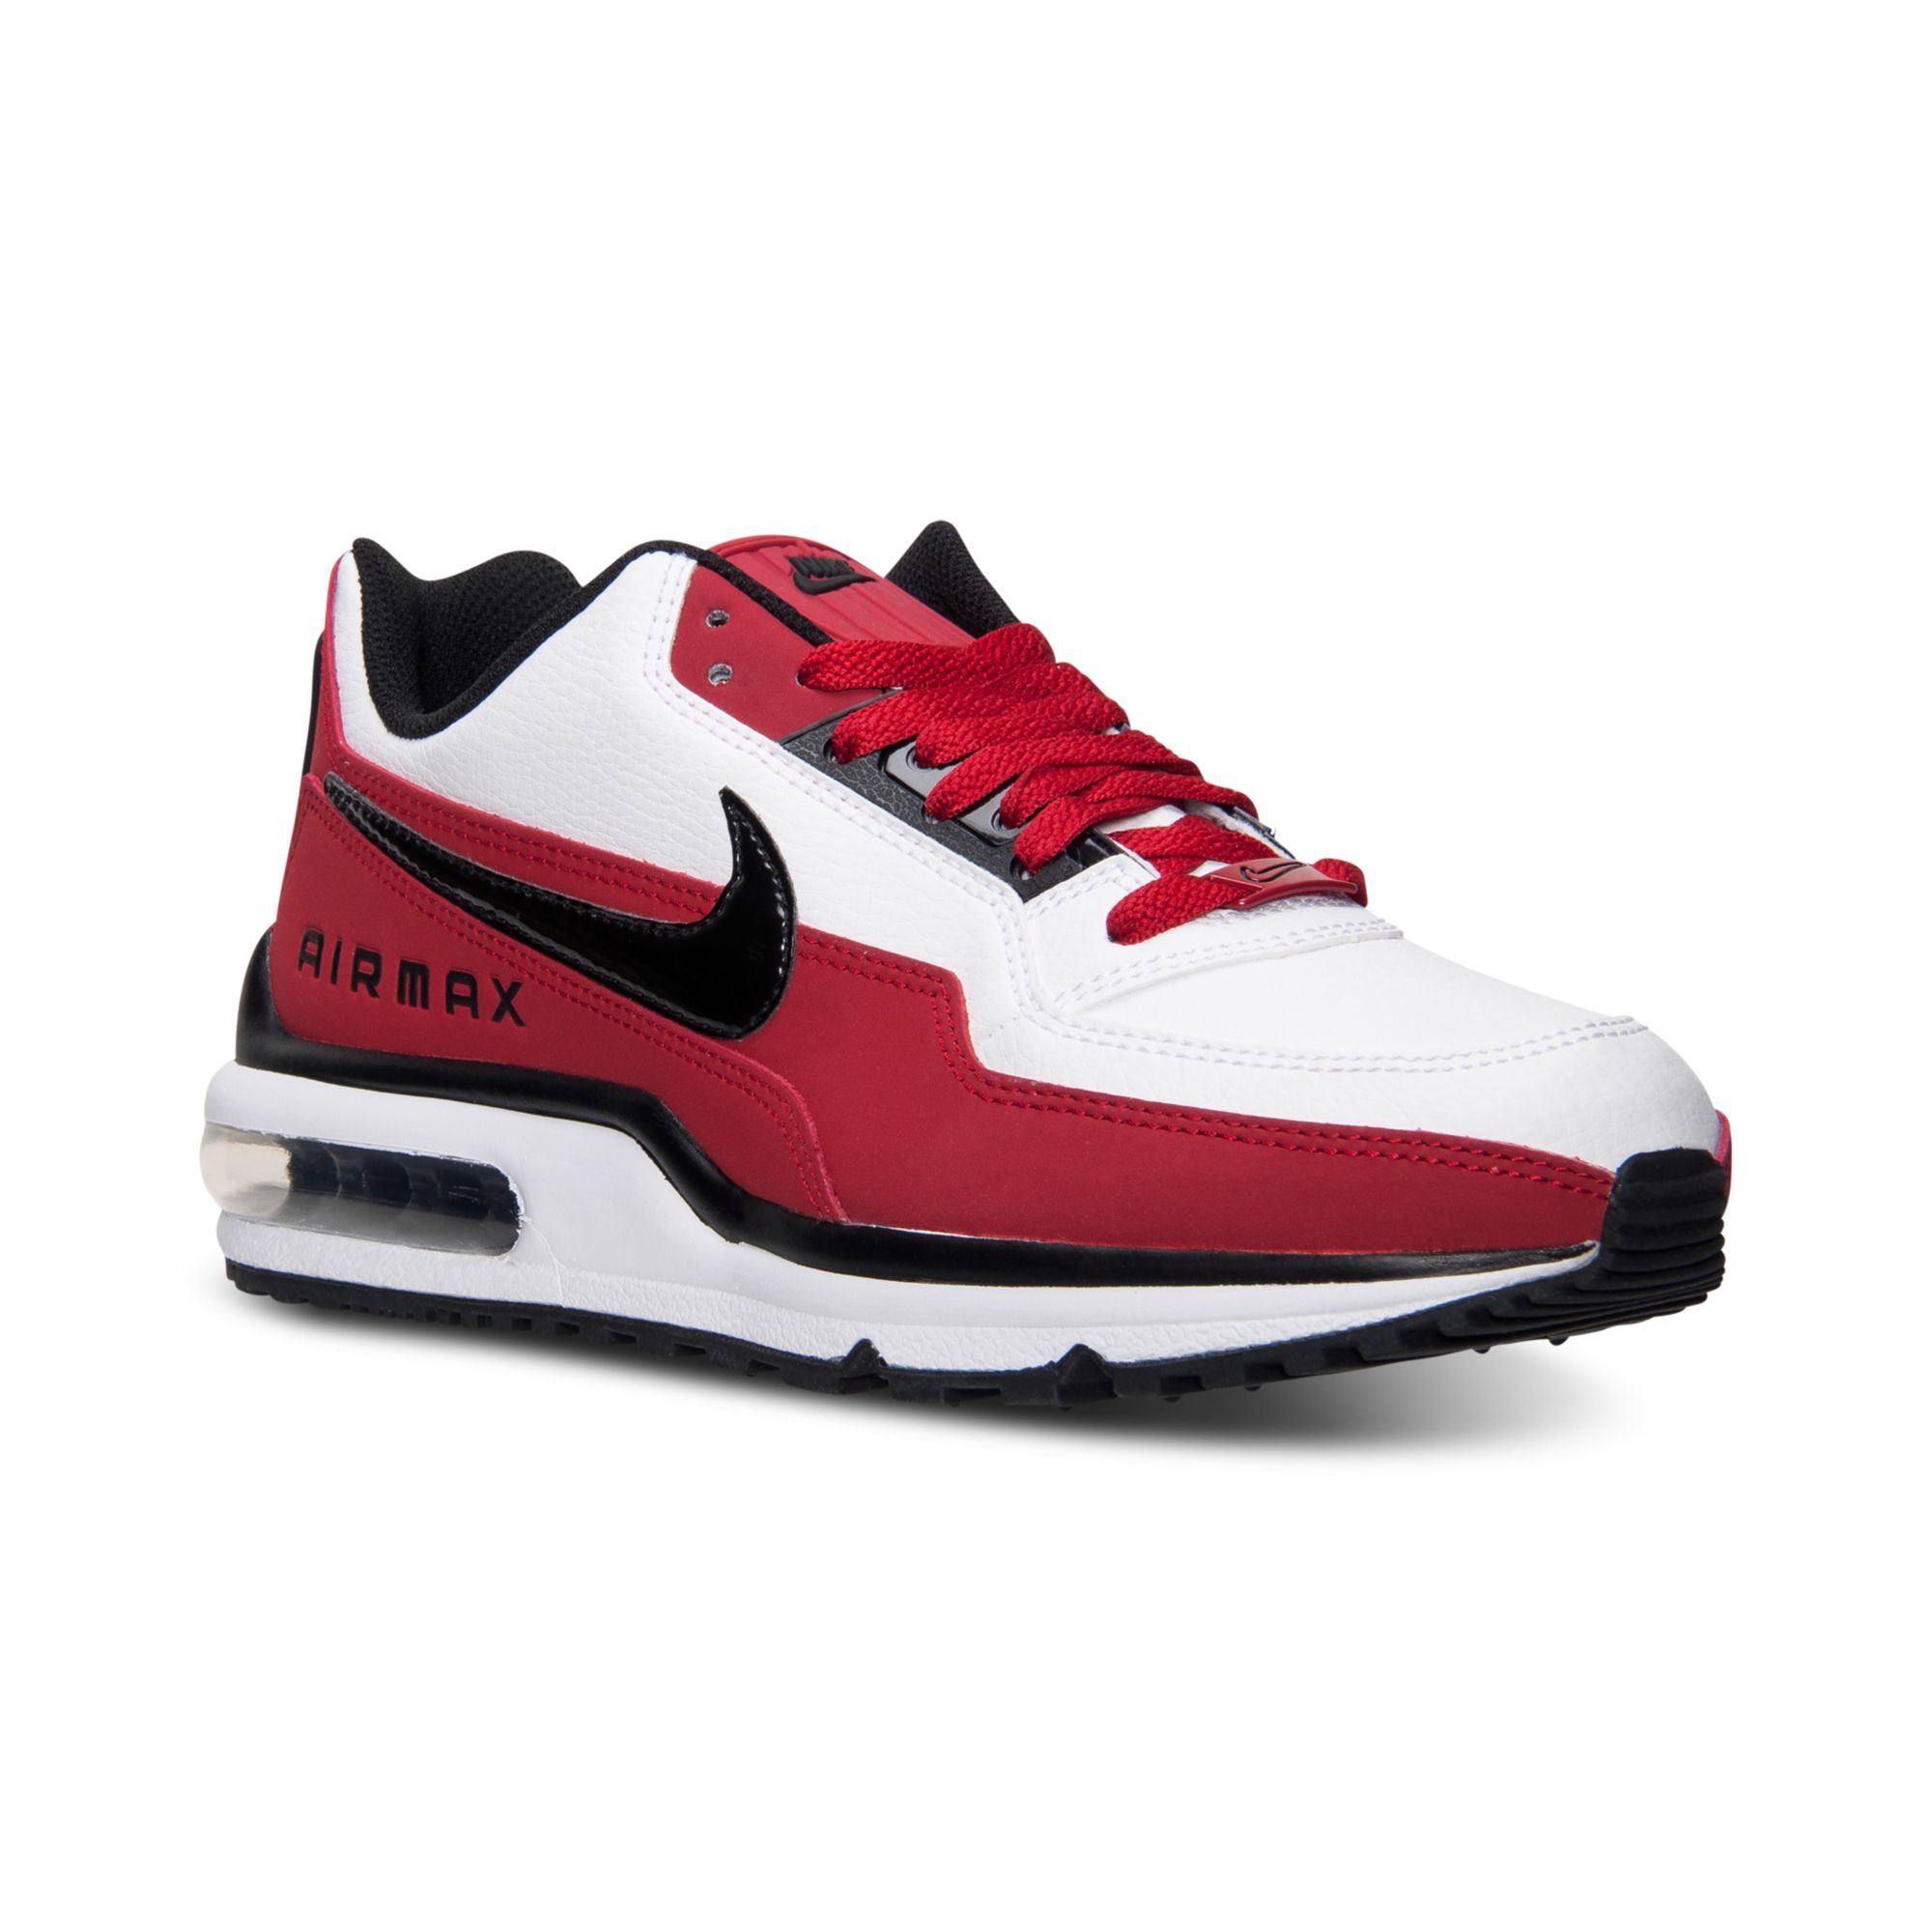 8ae4ffff0a2 ... clearance lyst nike mens air max ltd running sneakers from finish line  in c7ed2 368d7